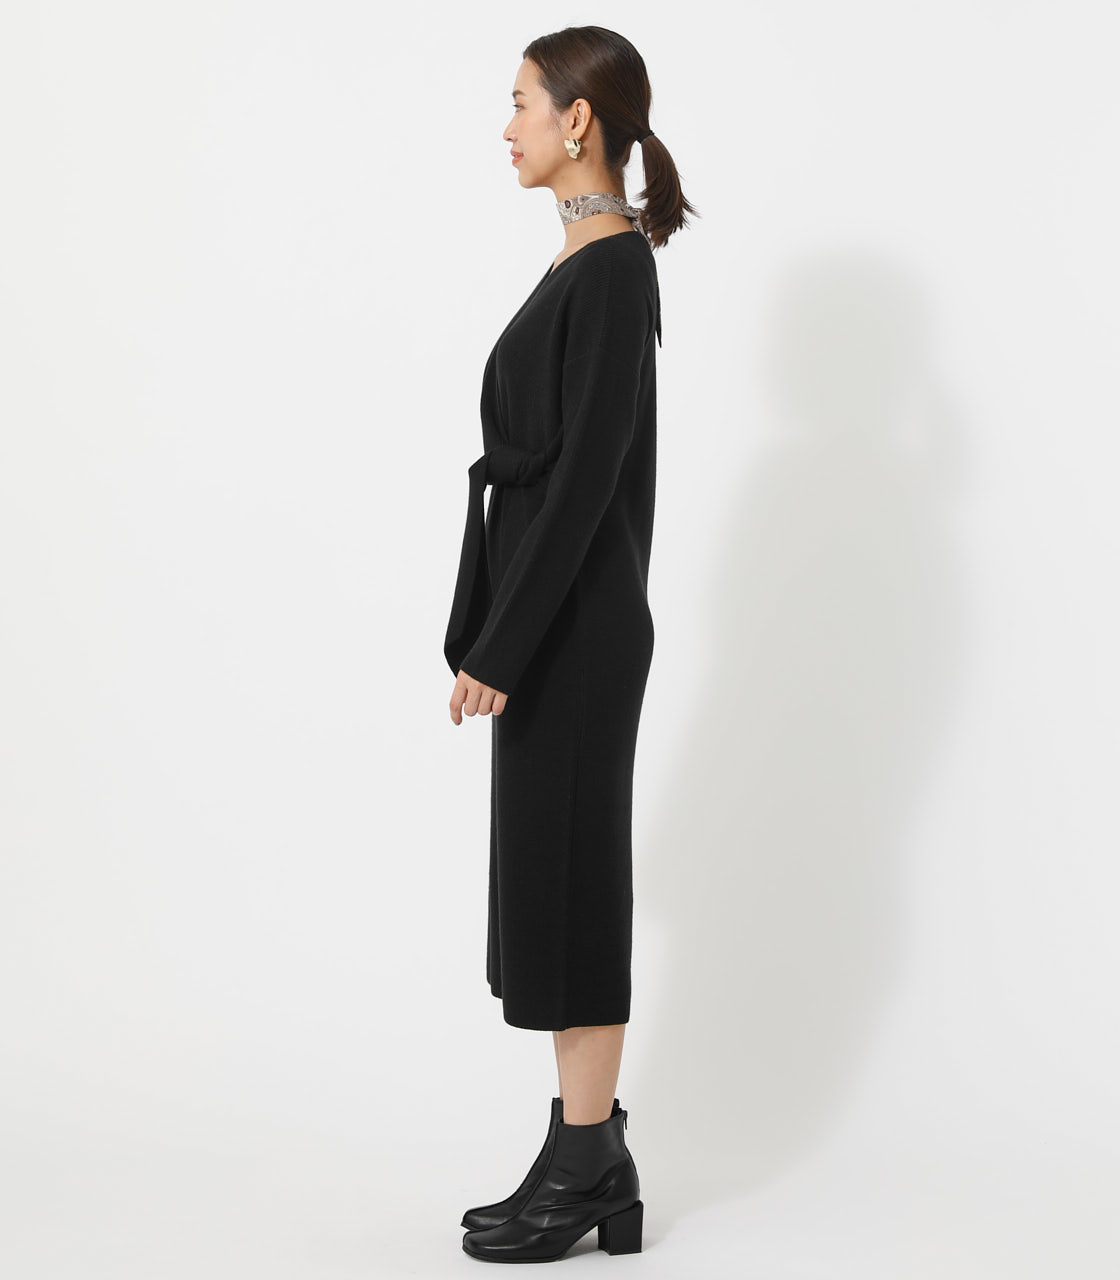 FRONT LINK KNIT ONEPIECE/フロントリンクニットワンピース 詳細画像 BLK 5